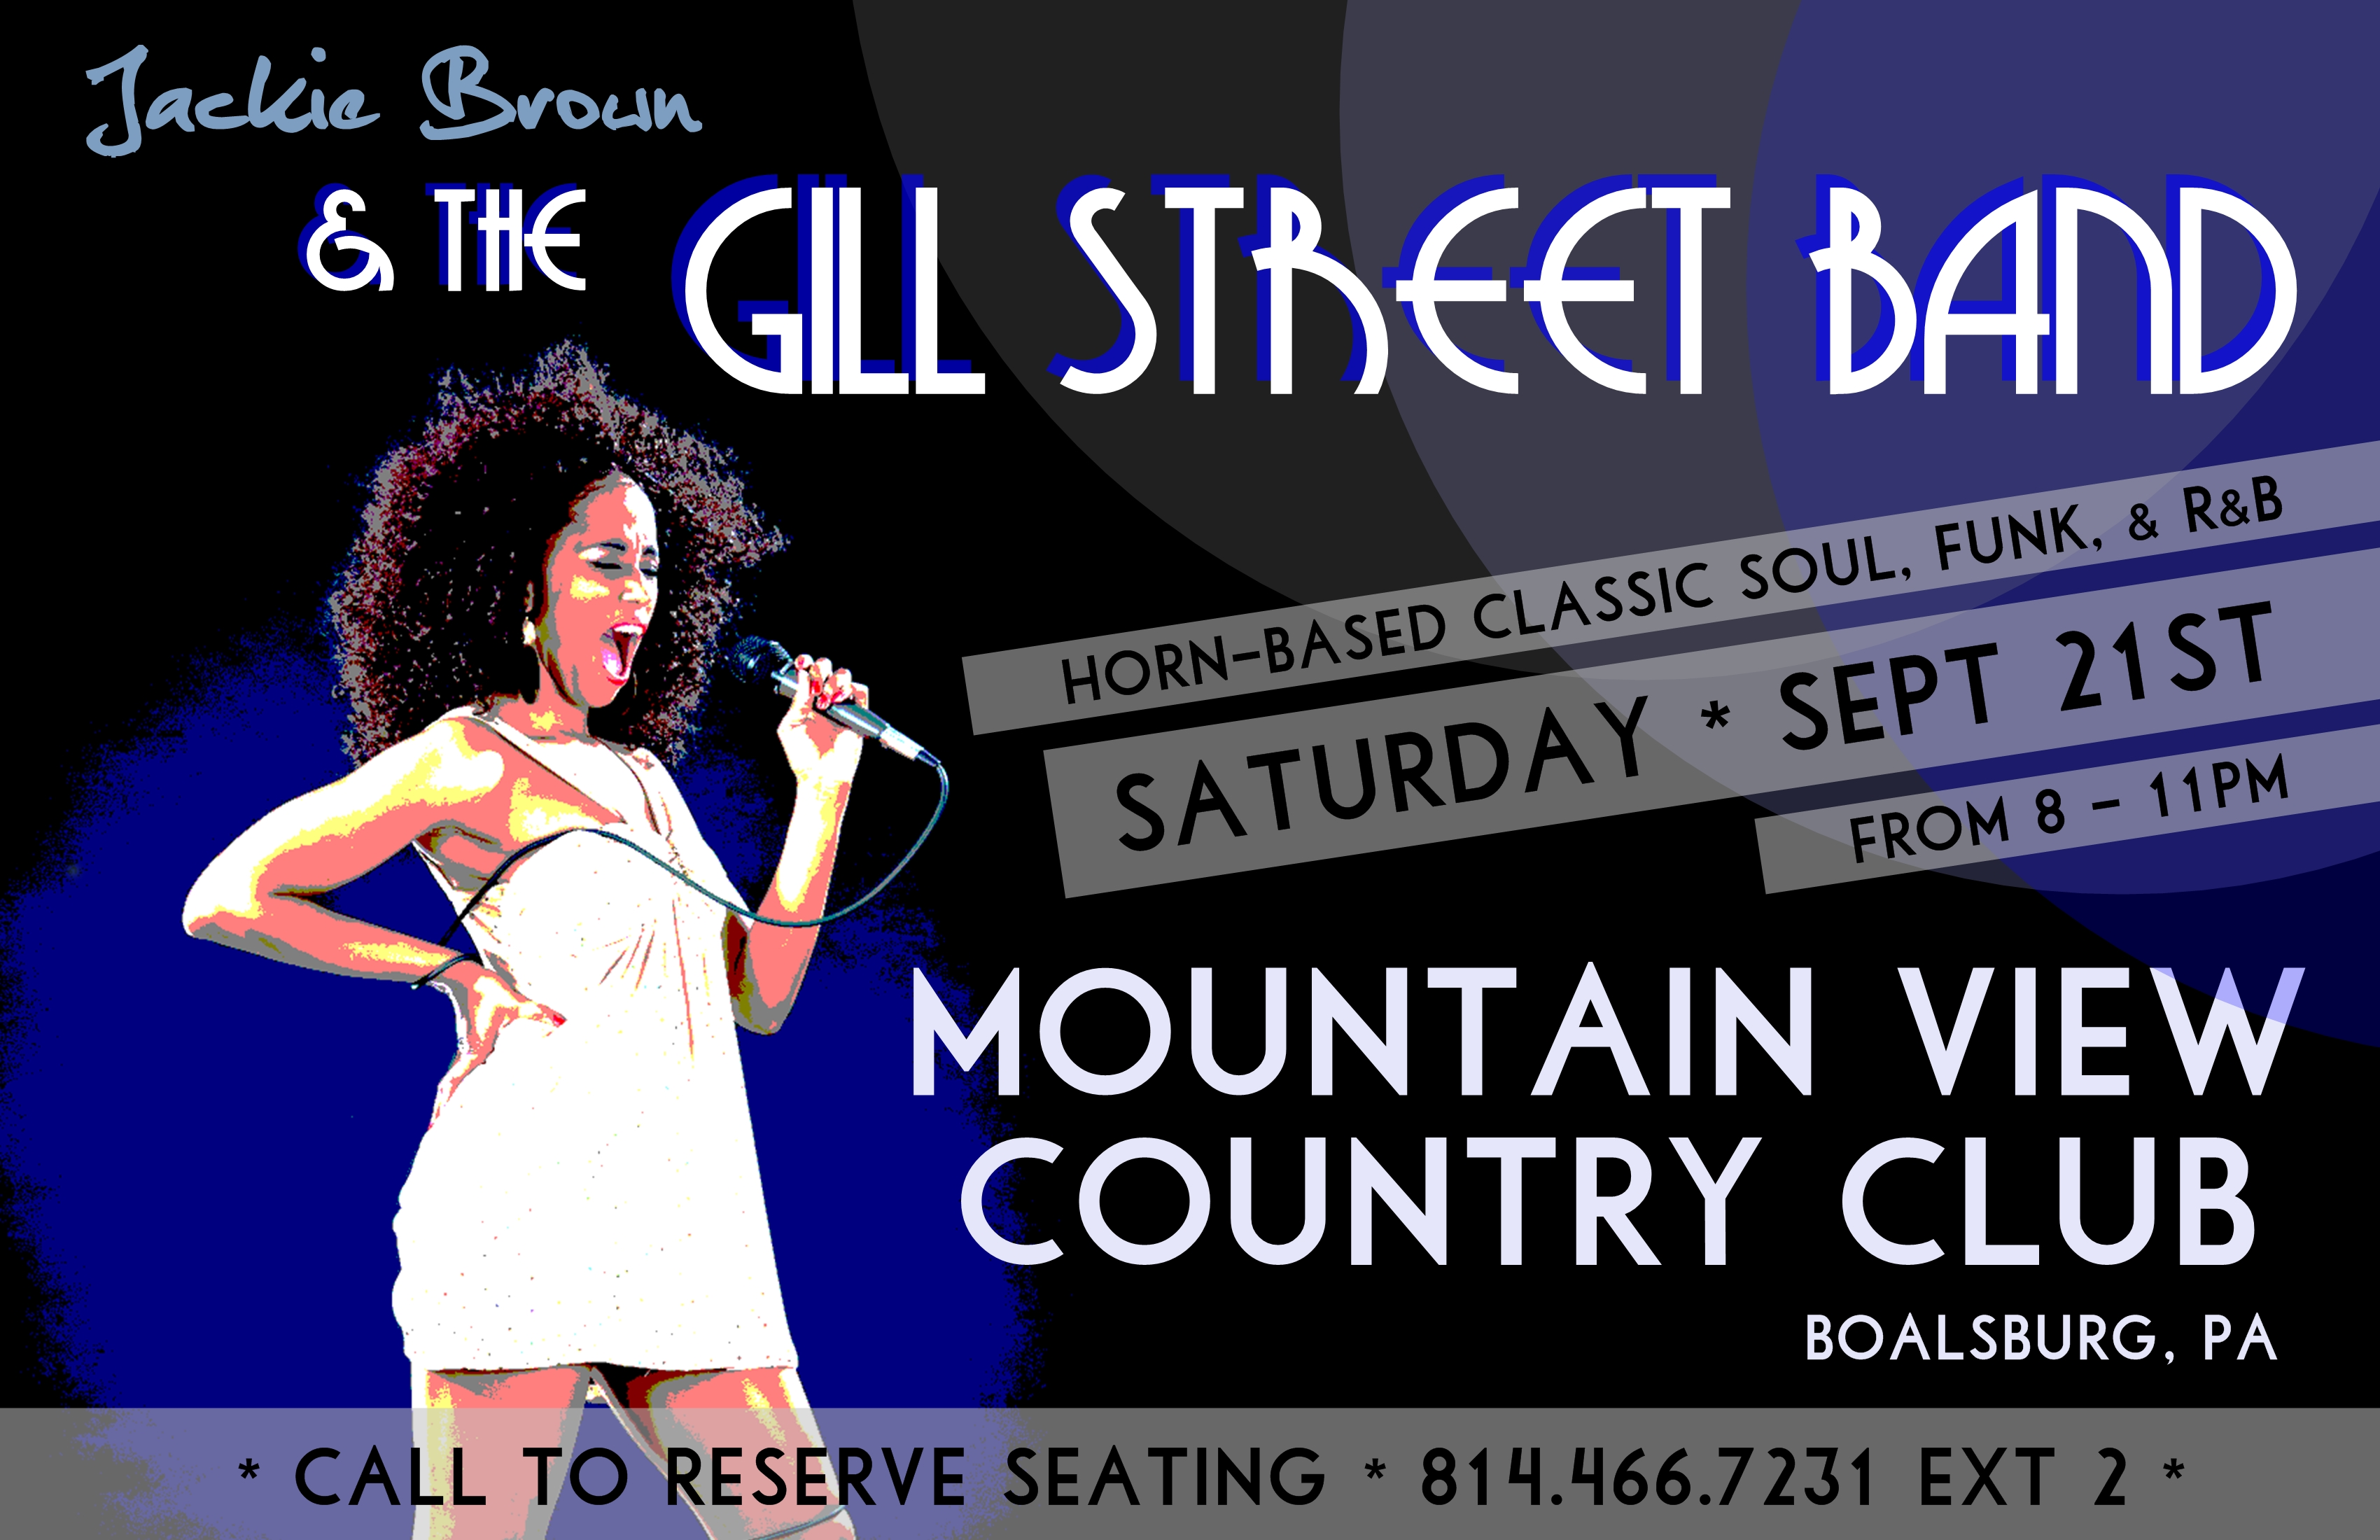 GSB @ Mountain View Country Club (9/21)